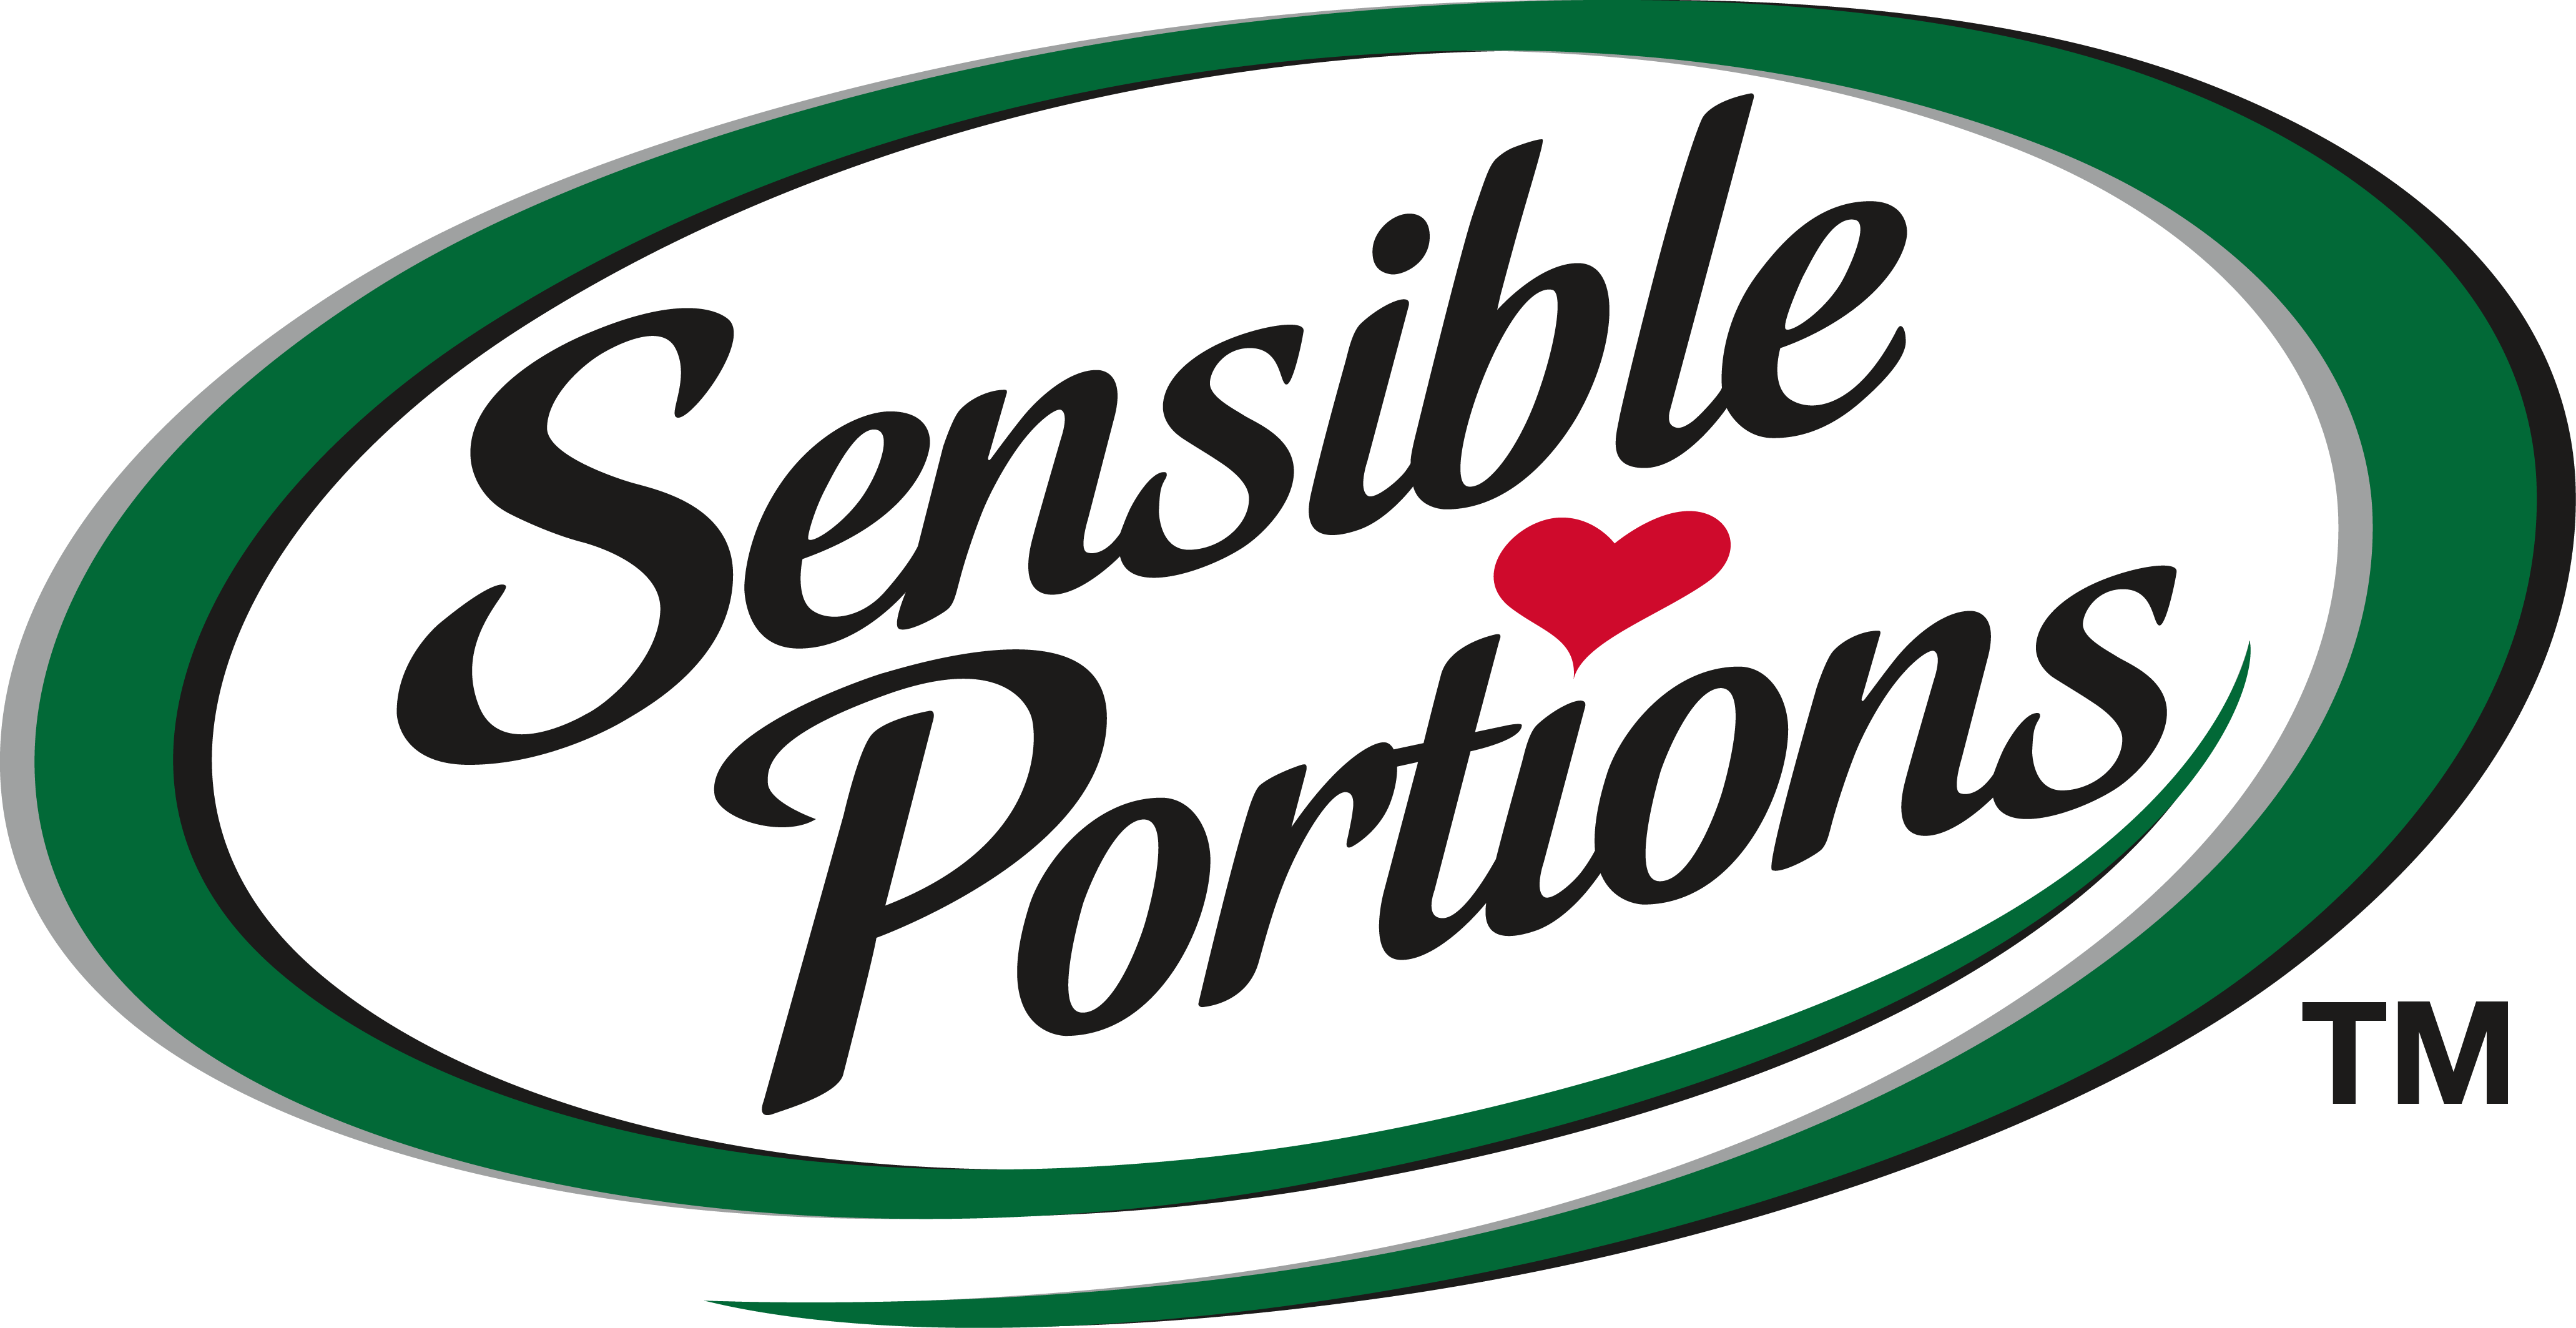 sensible portions logo manufacturing employee scheduling and manager log book